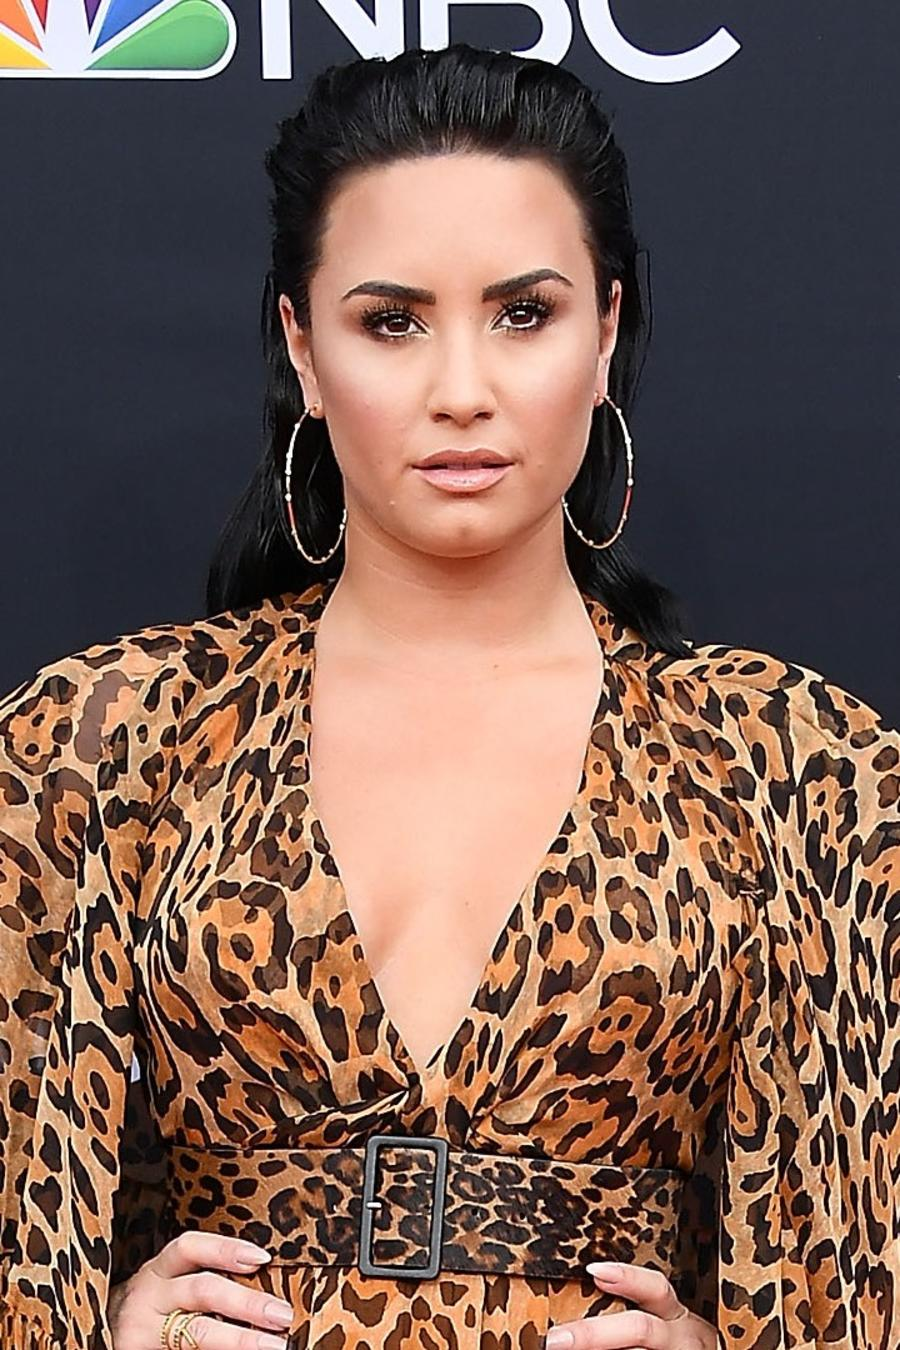 Demi Lovato at the Billboard Music Award